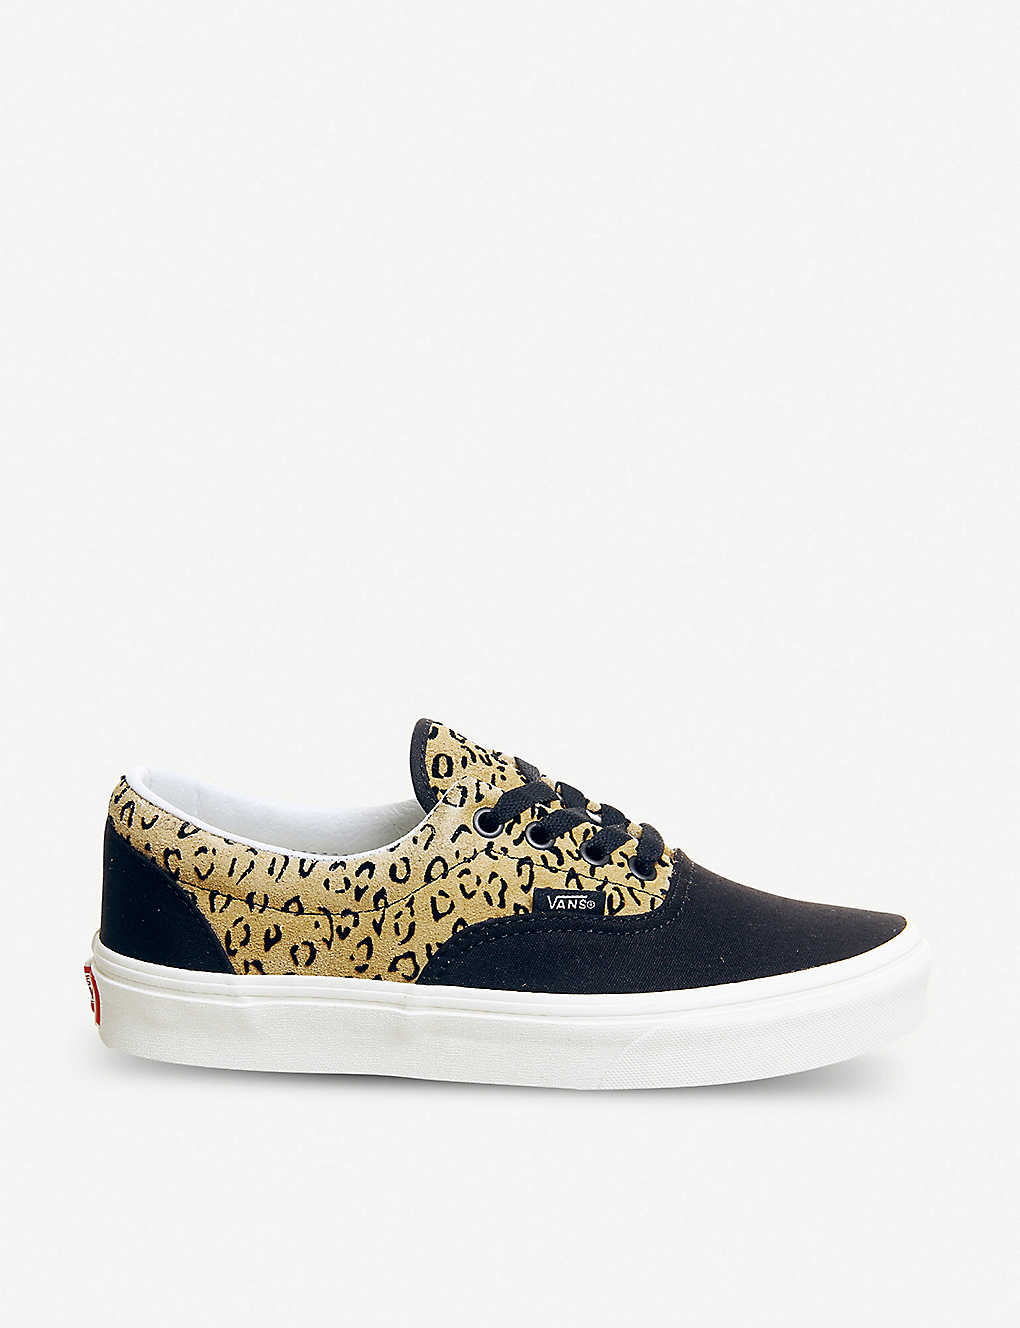 9a64900eb552 Era leopard-print leather and canvas trainers - Leopard black taffy ...